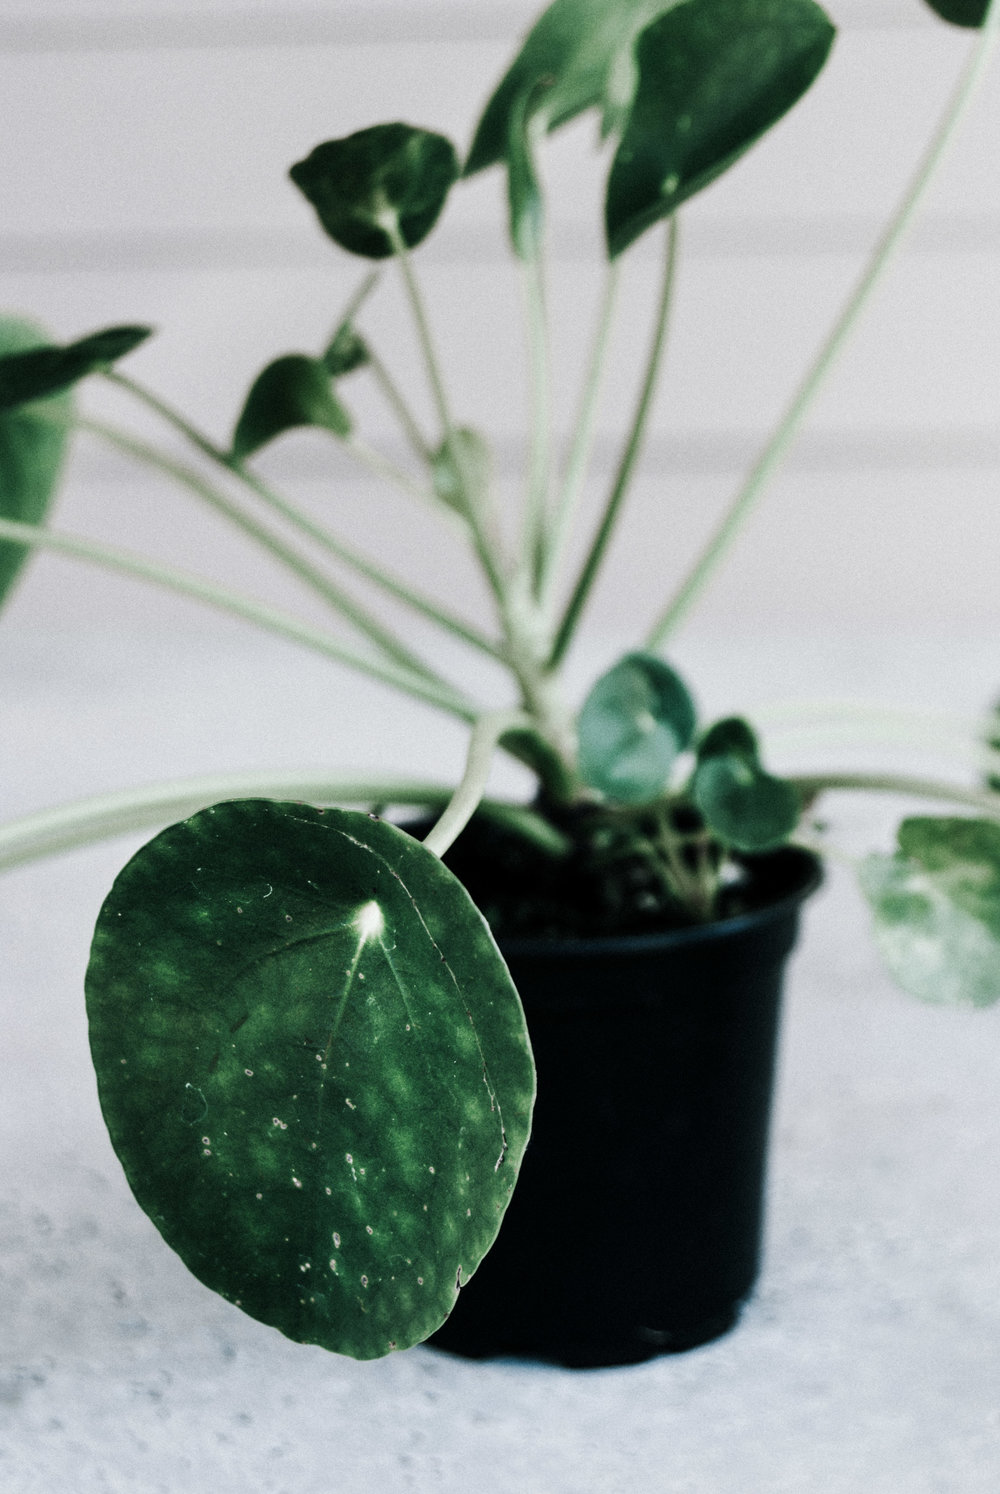 Chinese money plant (Pilea peperomioides) - houseplant care guide by Revive Nursery